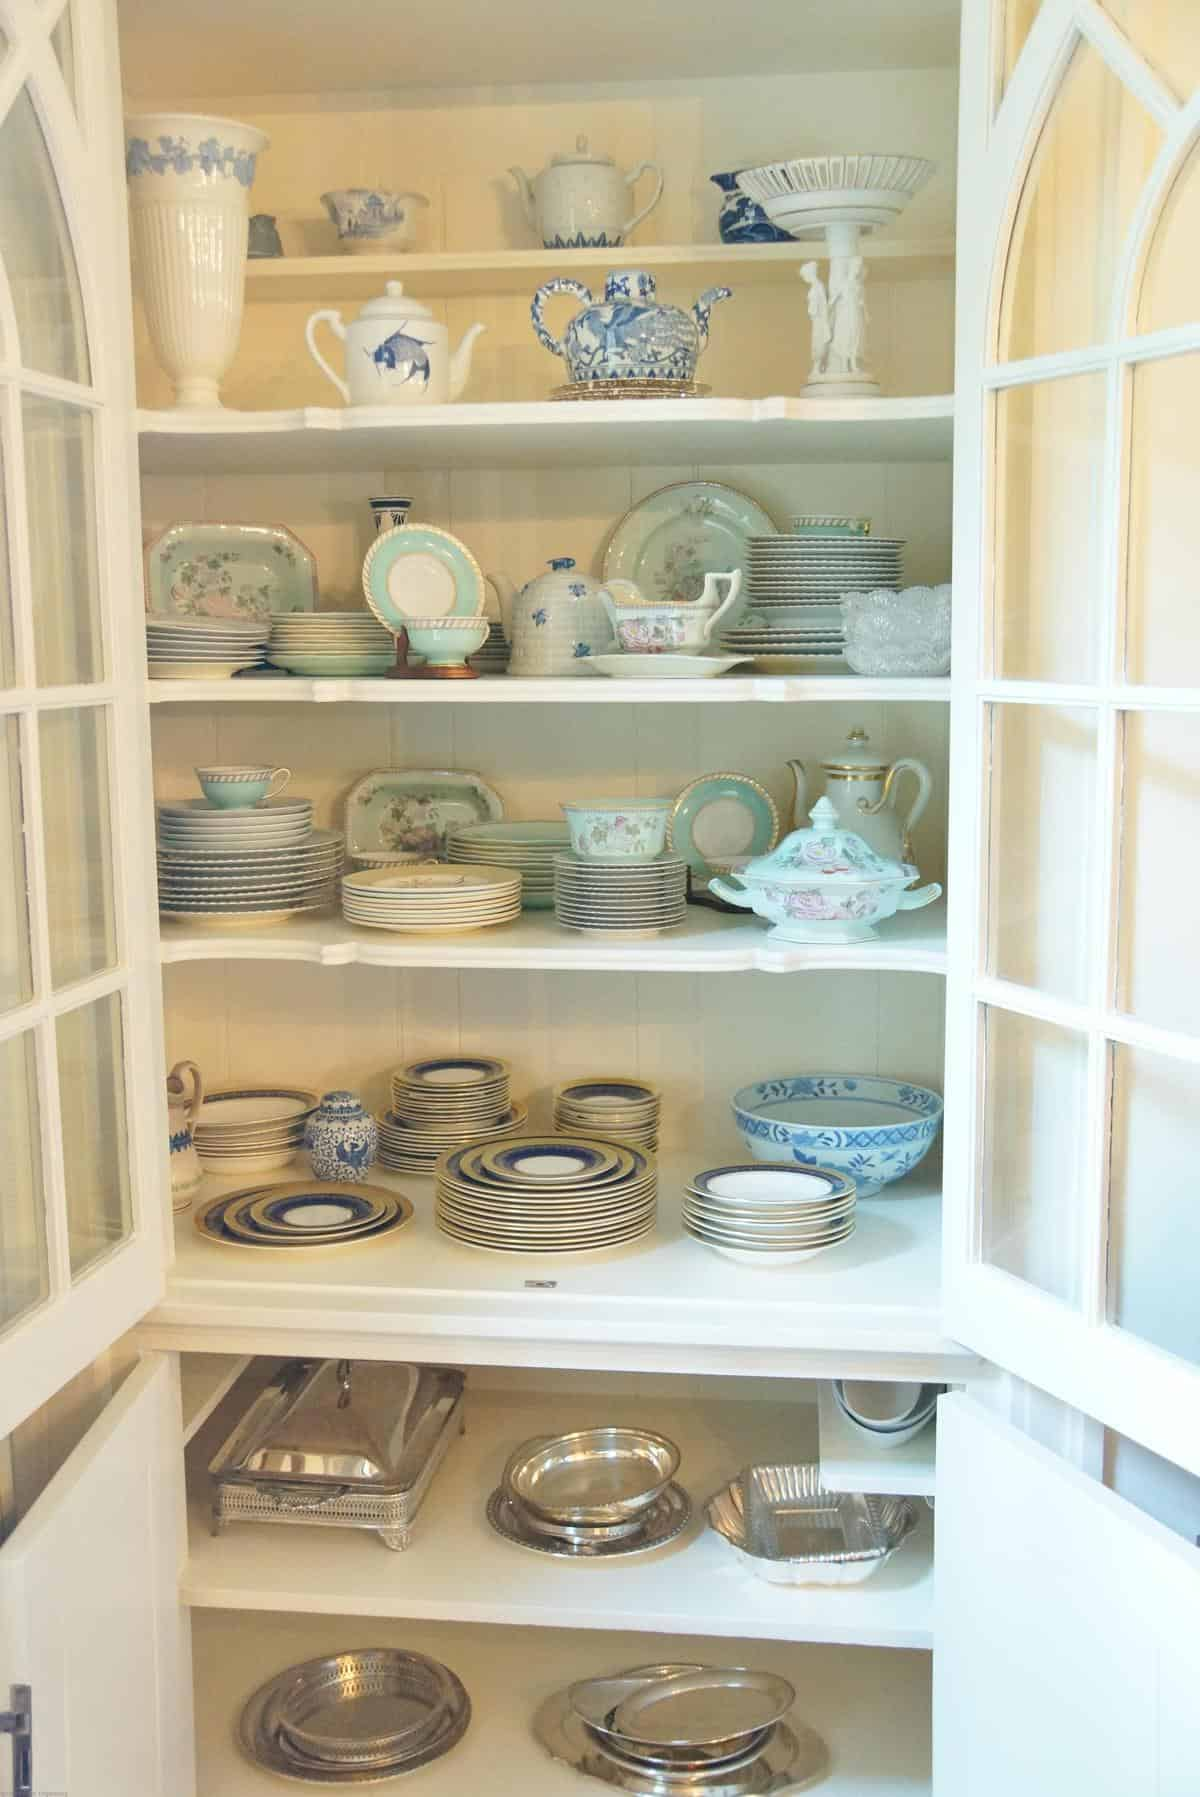 And Hereu0027s The Styled China Cabinet After: